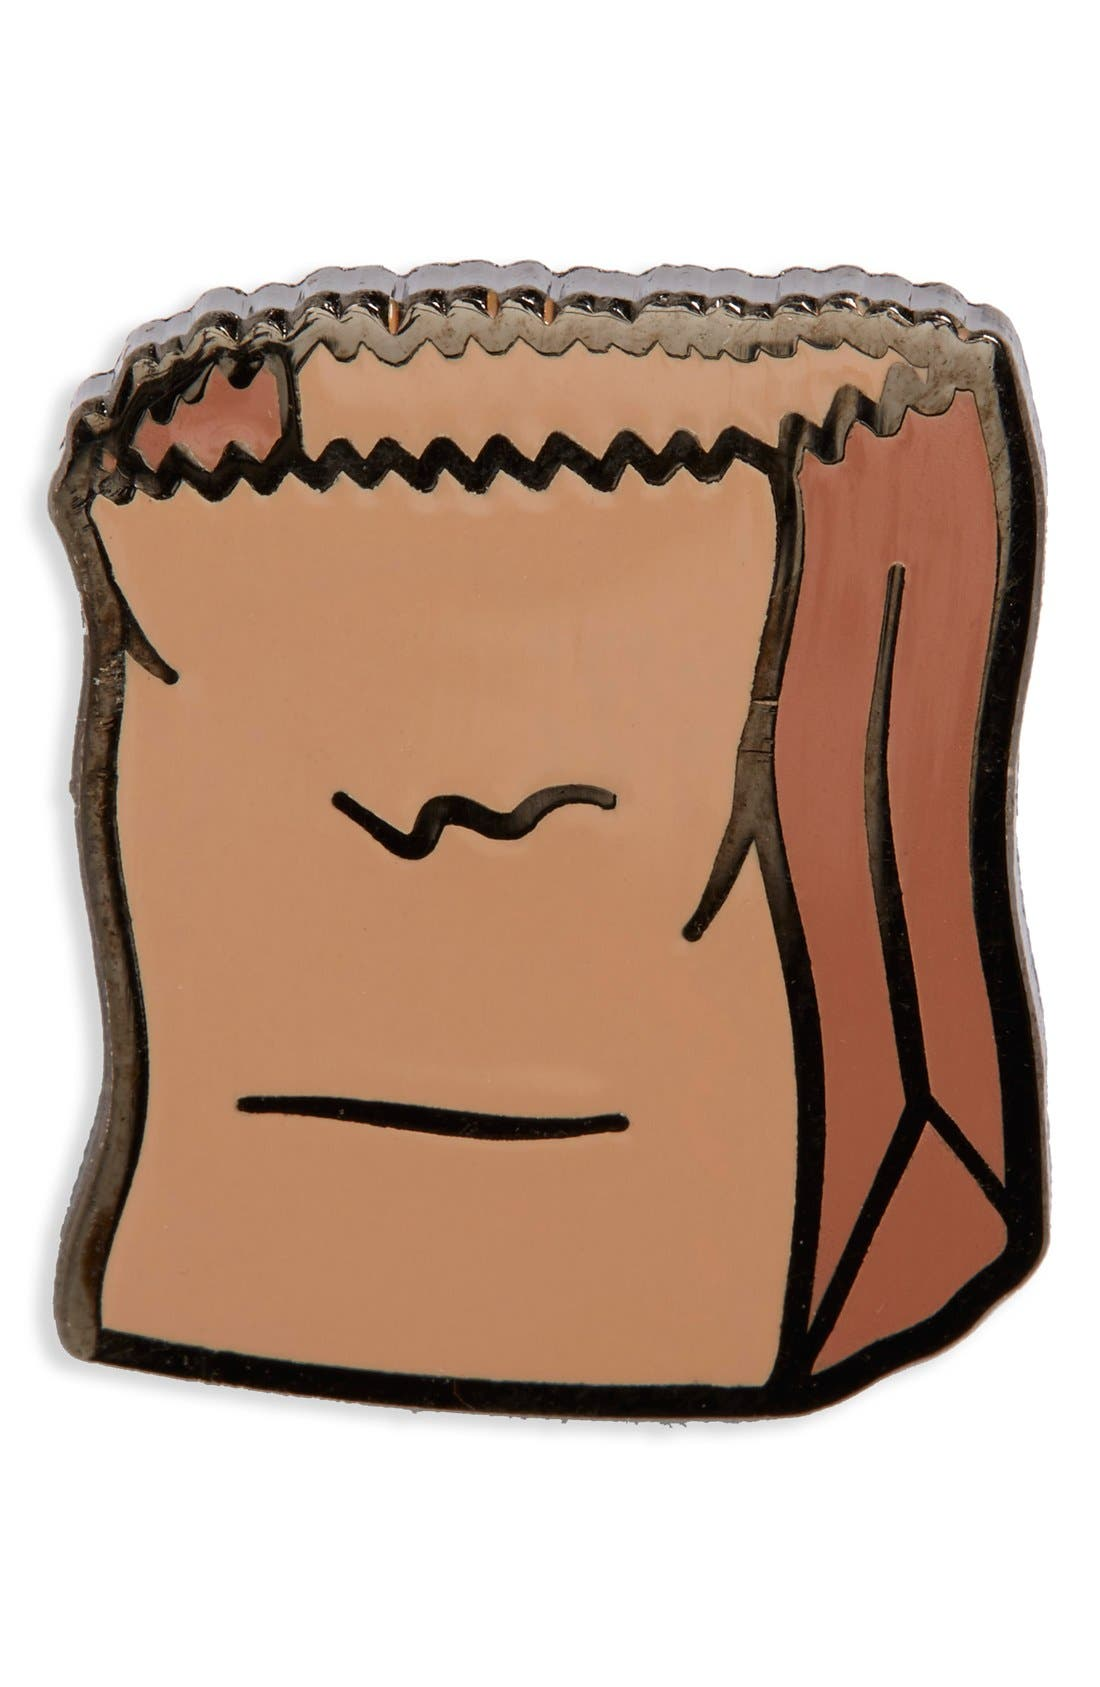 Alternate Image 1 Selected - PINTRILL 'Brown Bag' Fashion Accessory Pin